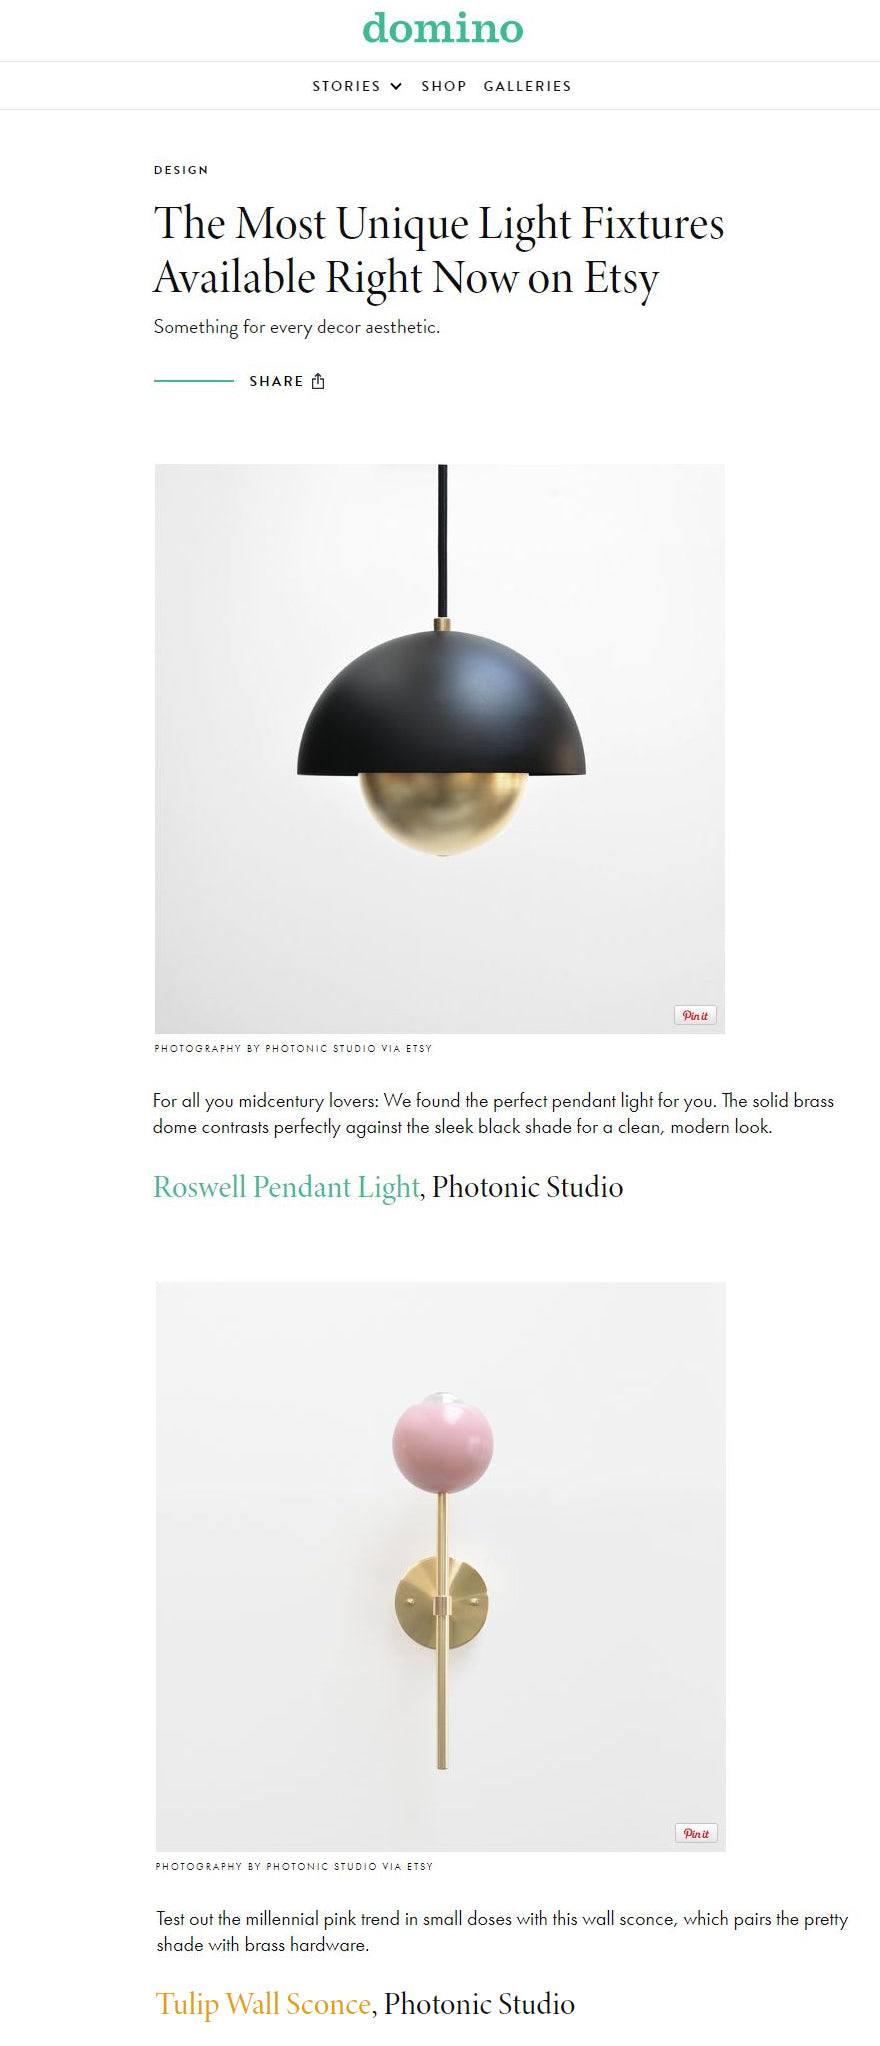 Photonic Studio Roswell Pendant and Tulip Sconce in Domino Magazine